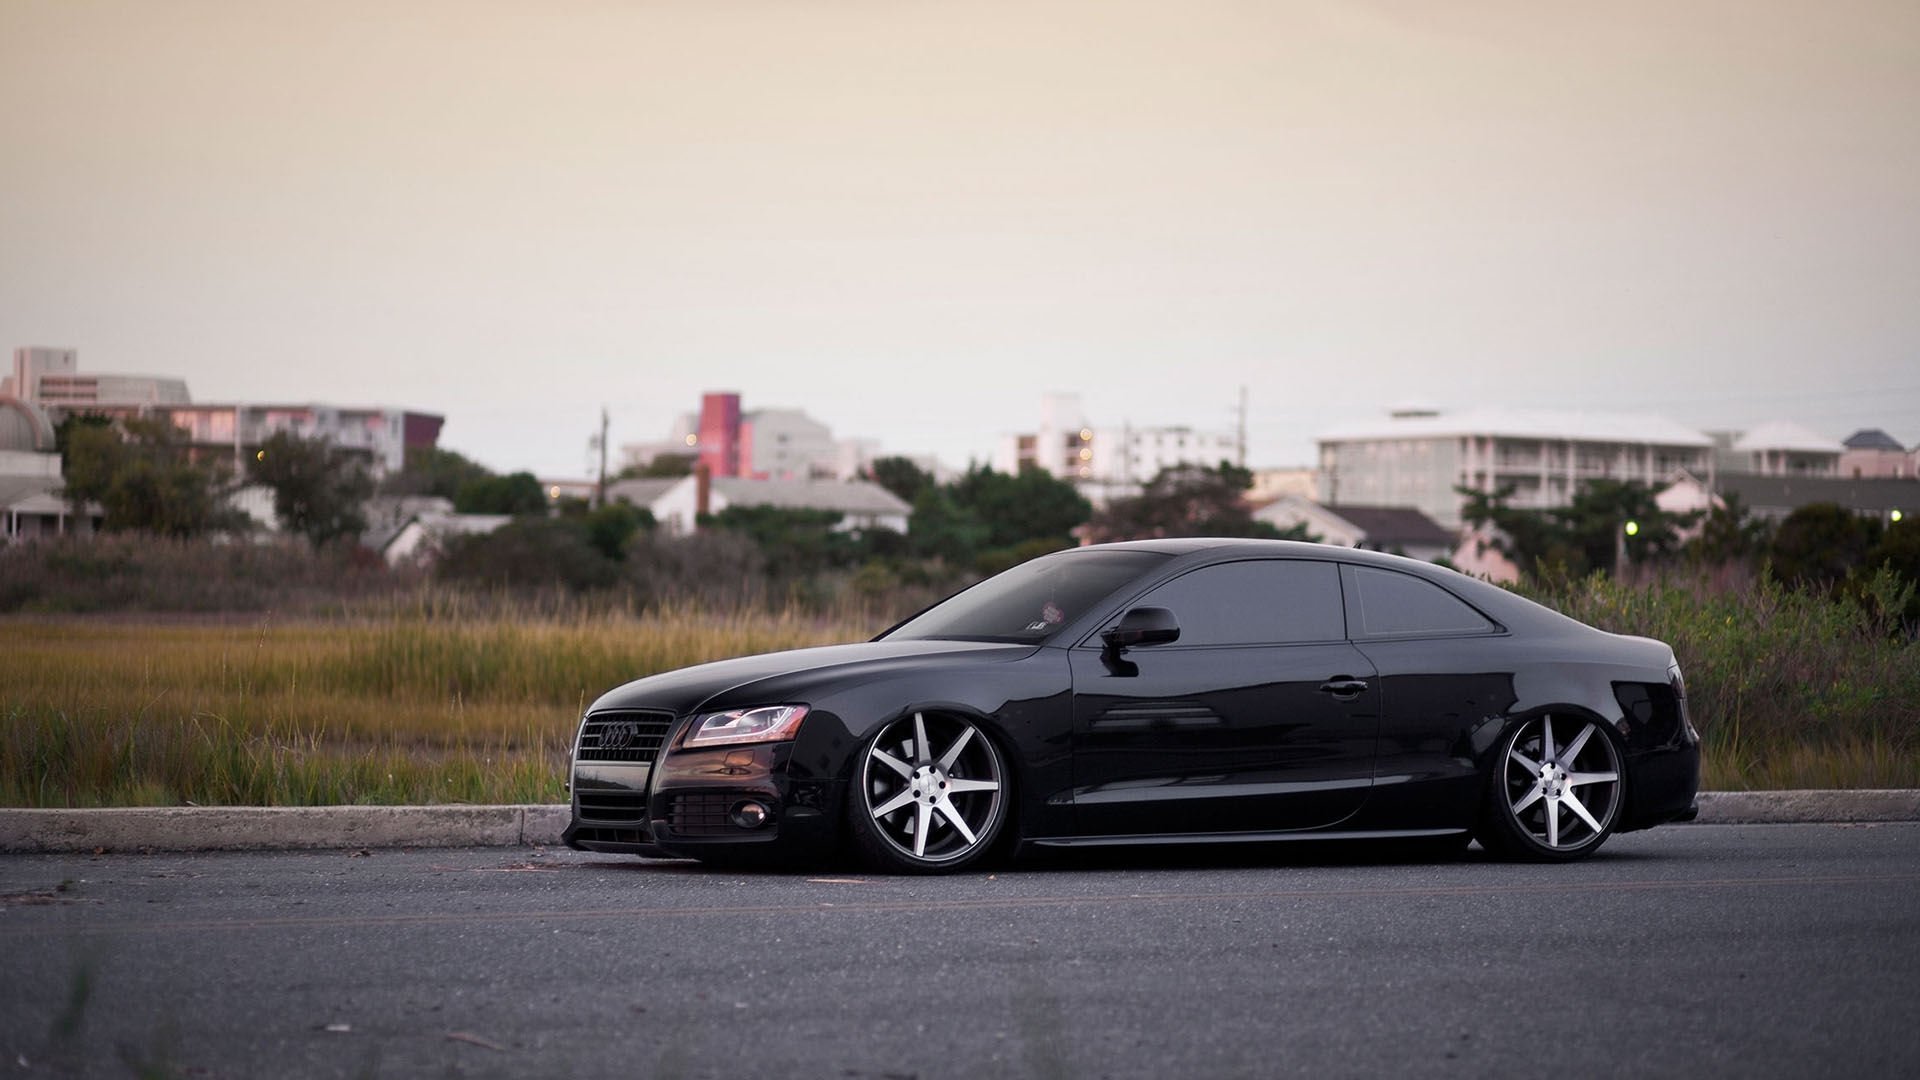 Audi S5 Vossen Wheels Car